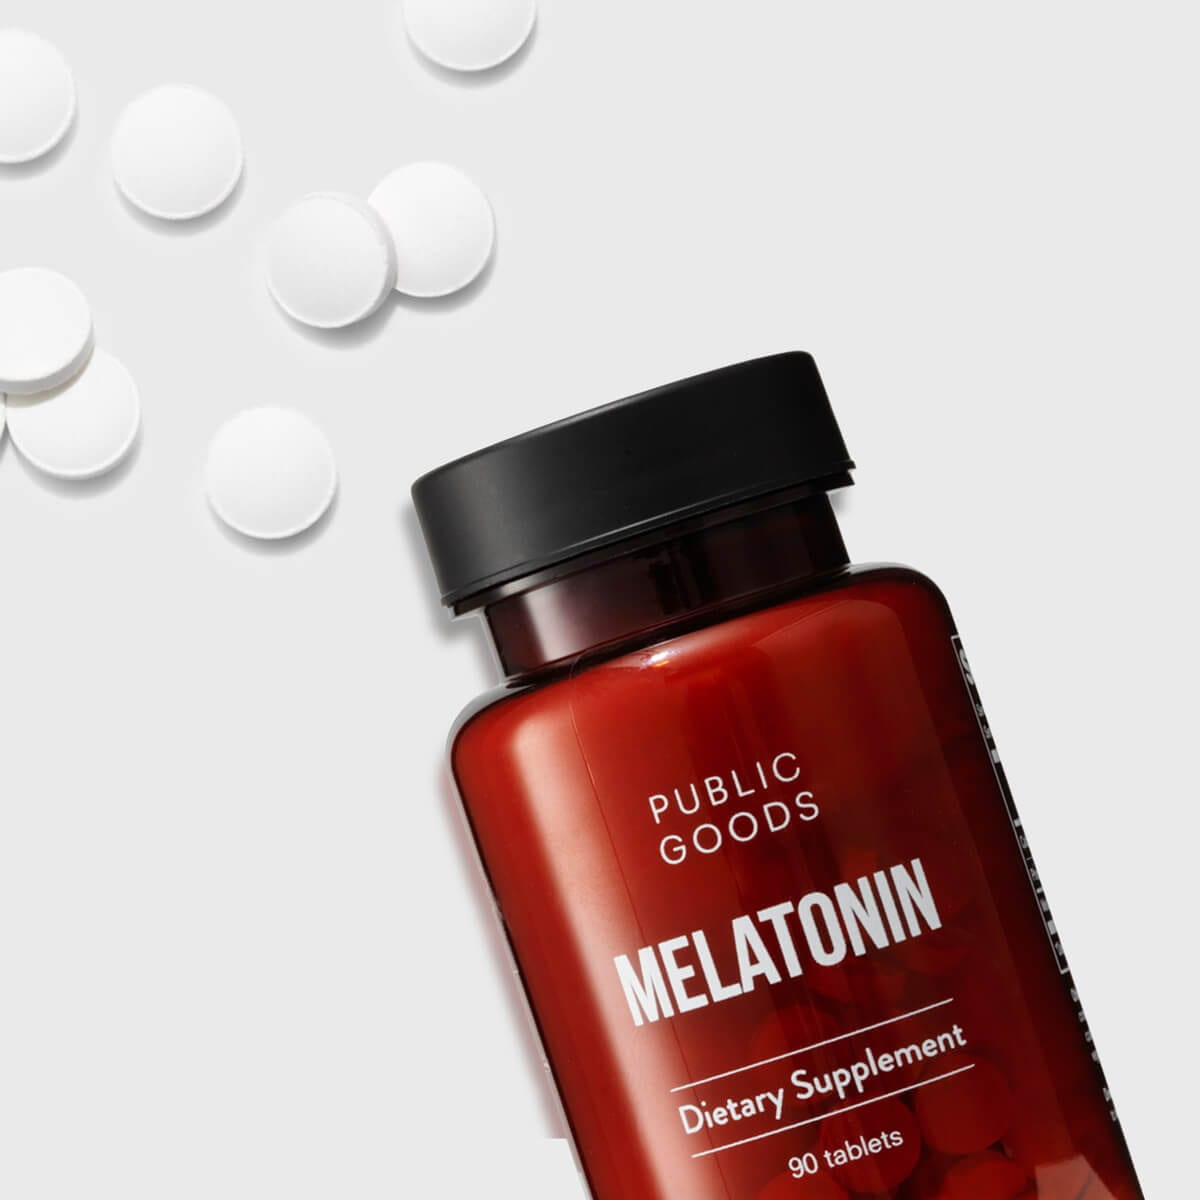 bottle of melatonin supplements